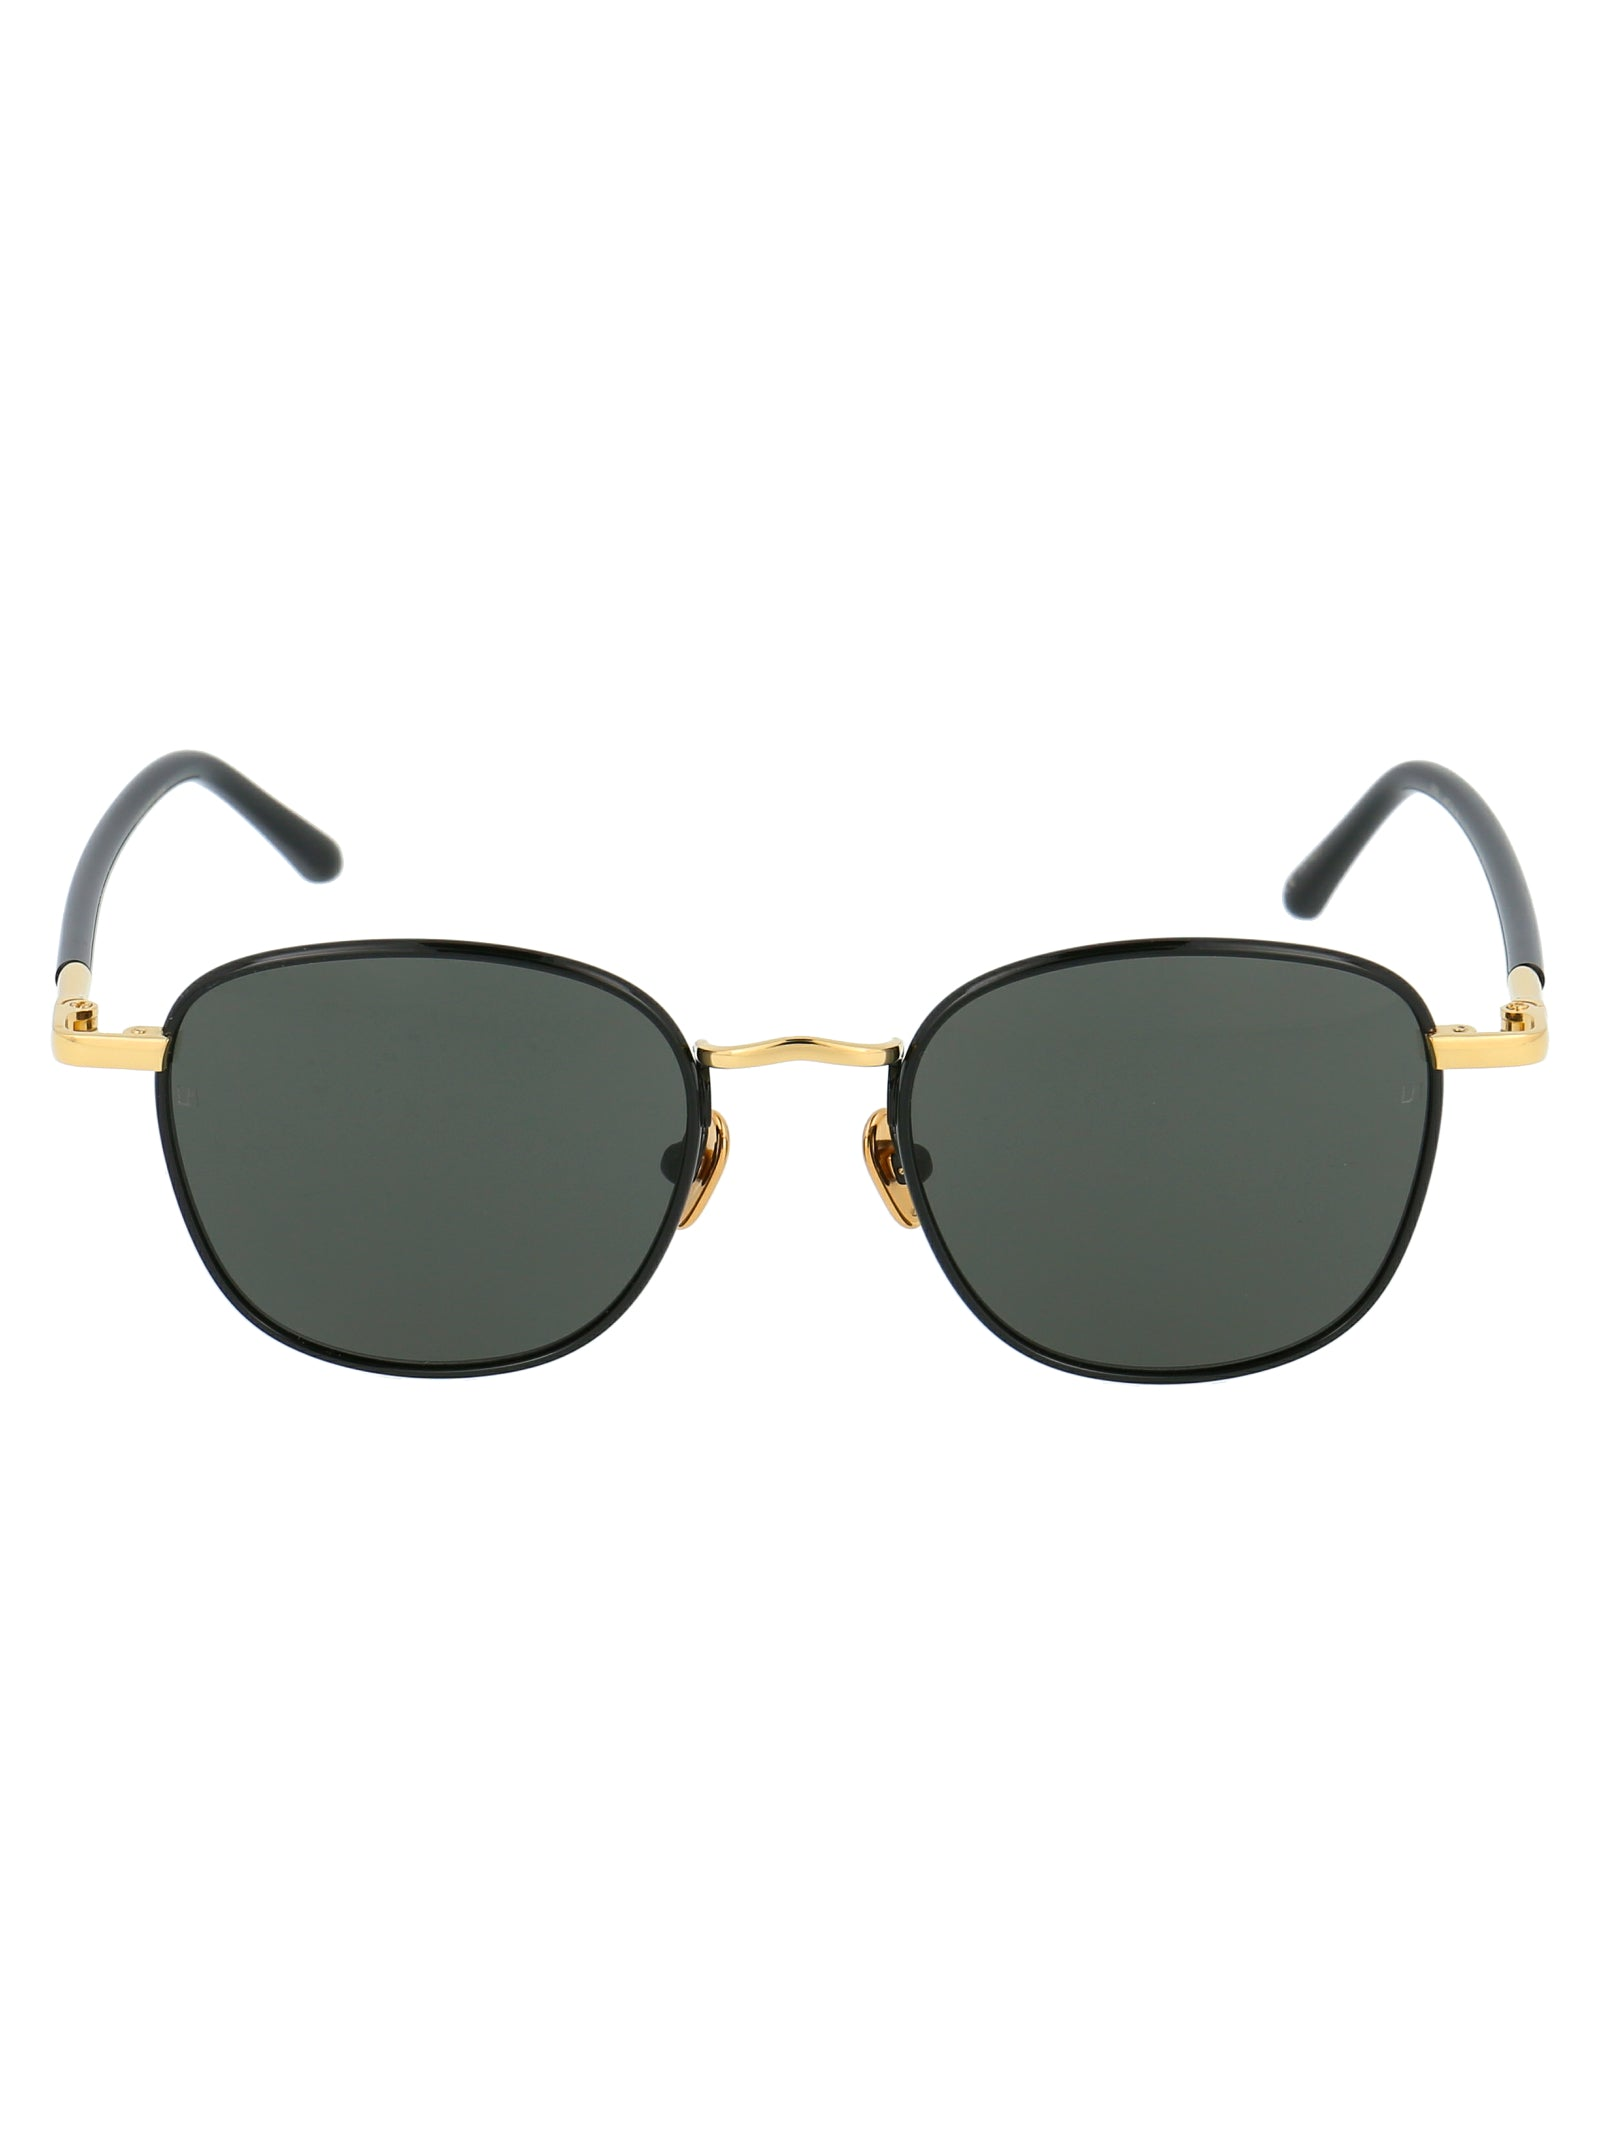 Linda Farrow Sunglasses LINDA FARROW ROUND FRAME SUNGLASSES